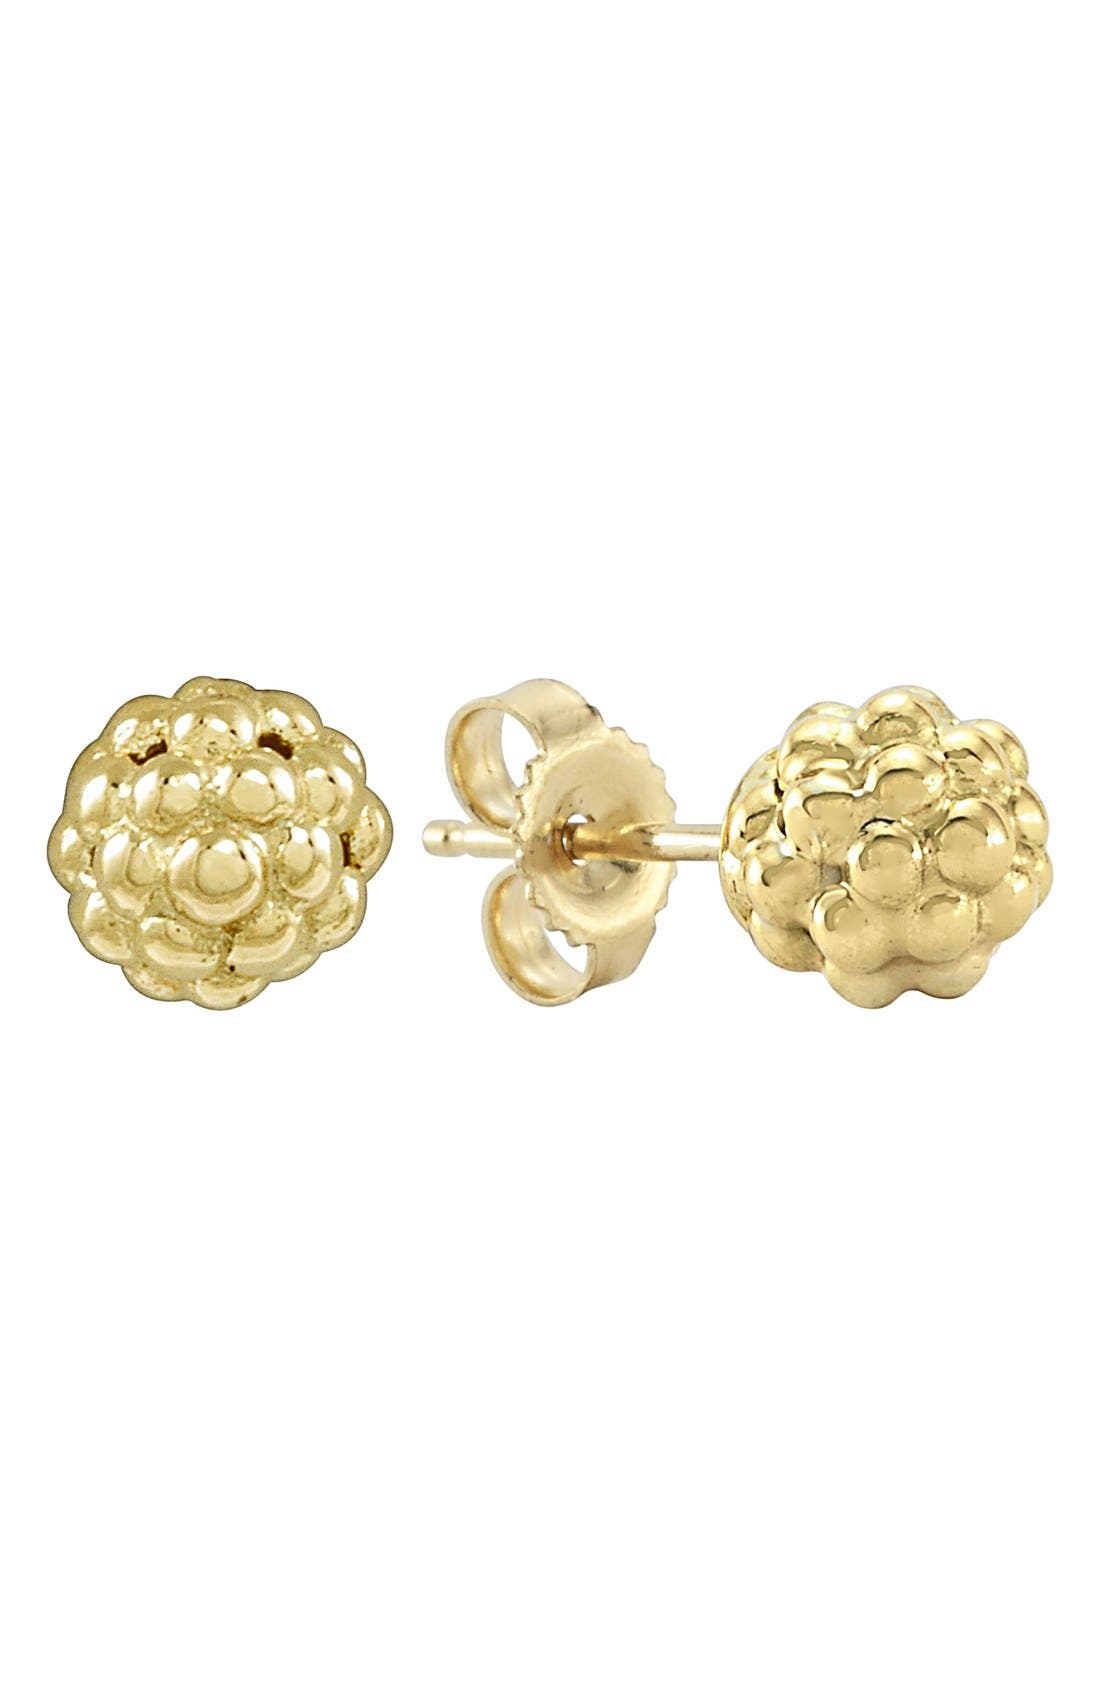 LAGOS 'Caviar Icon' Stud Earrings